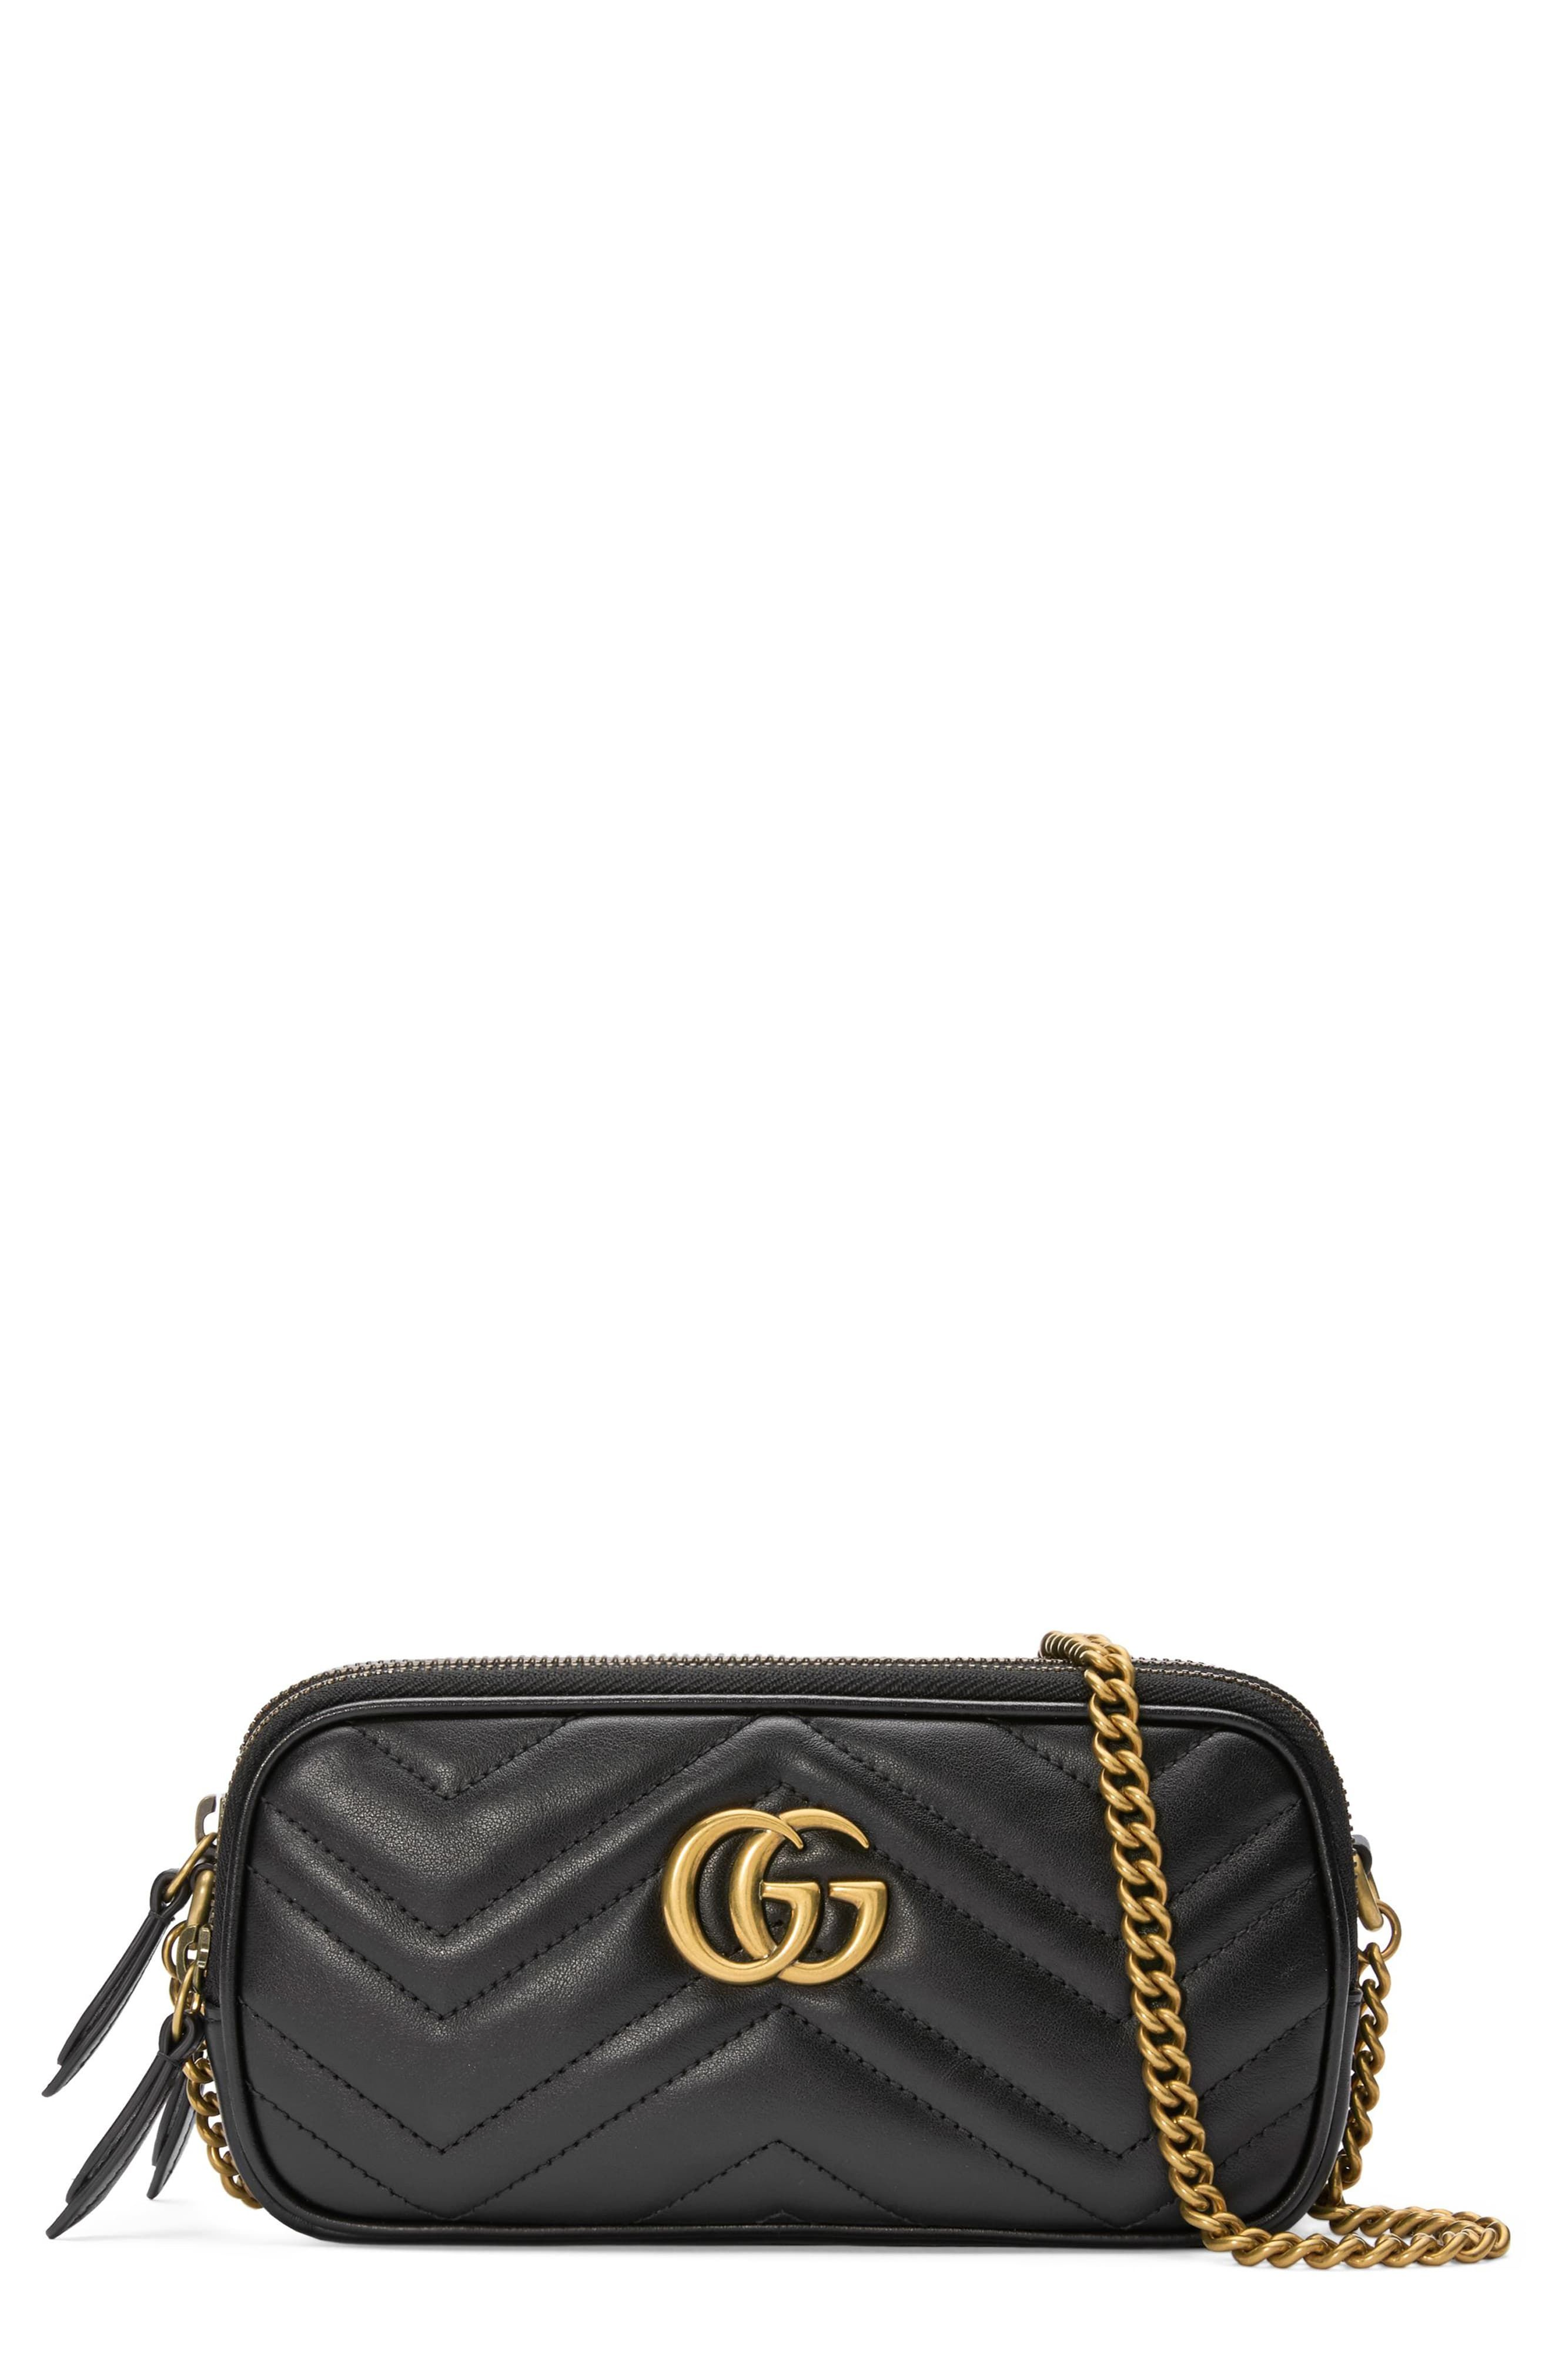 870042be Gucci Marmont 2.0 Leather Crossbody Bag - Beige in 2019 | Products ...